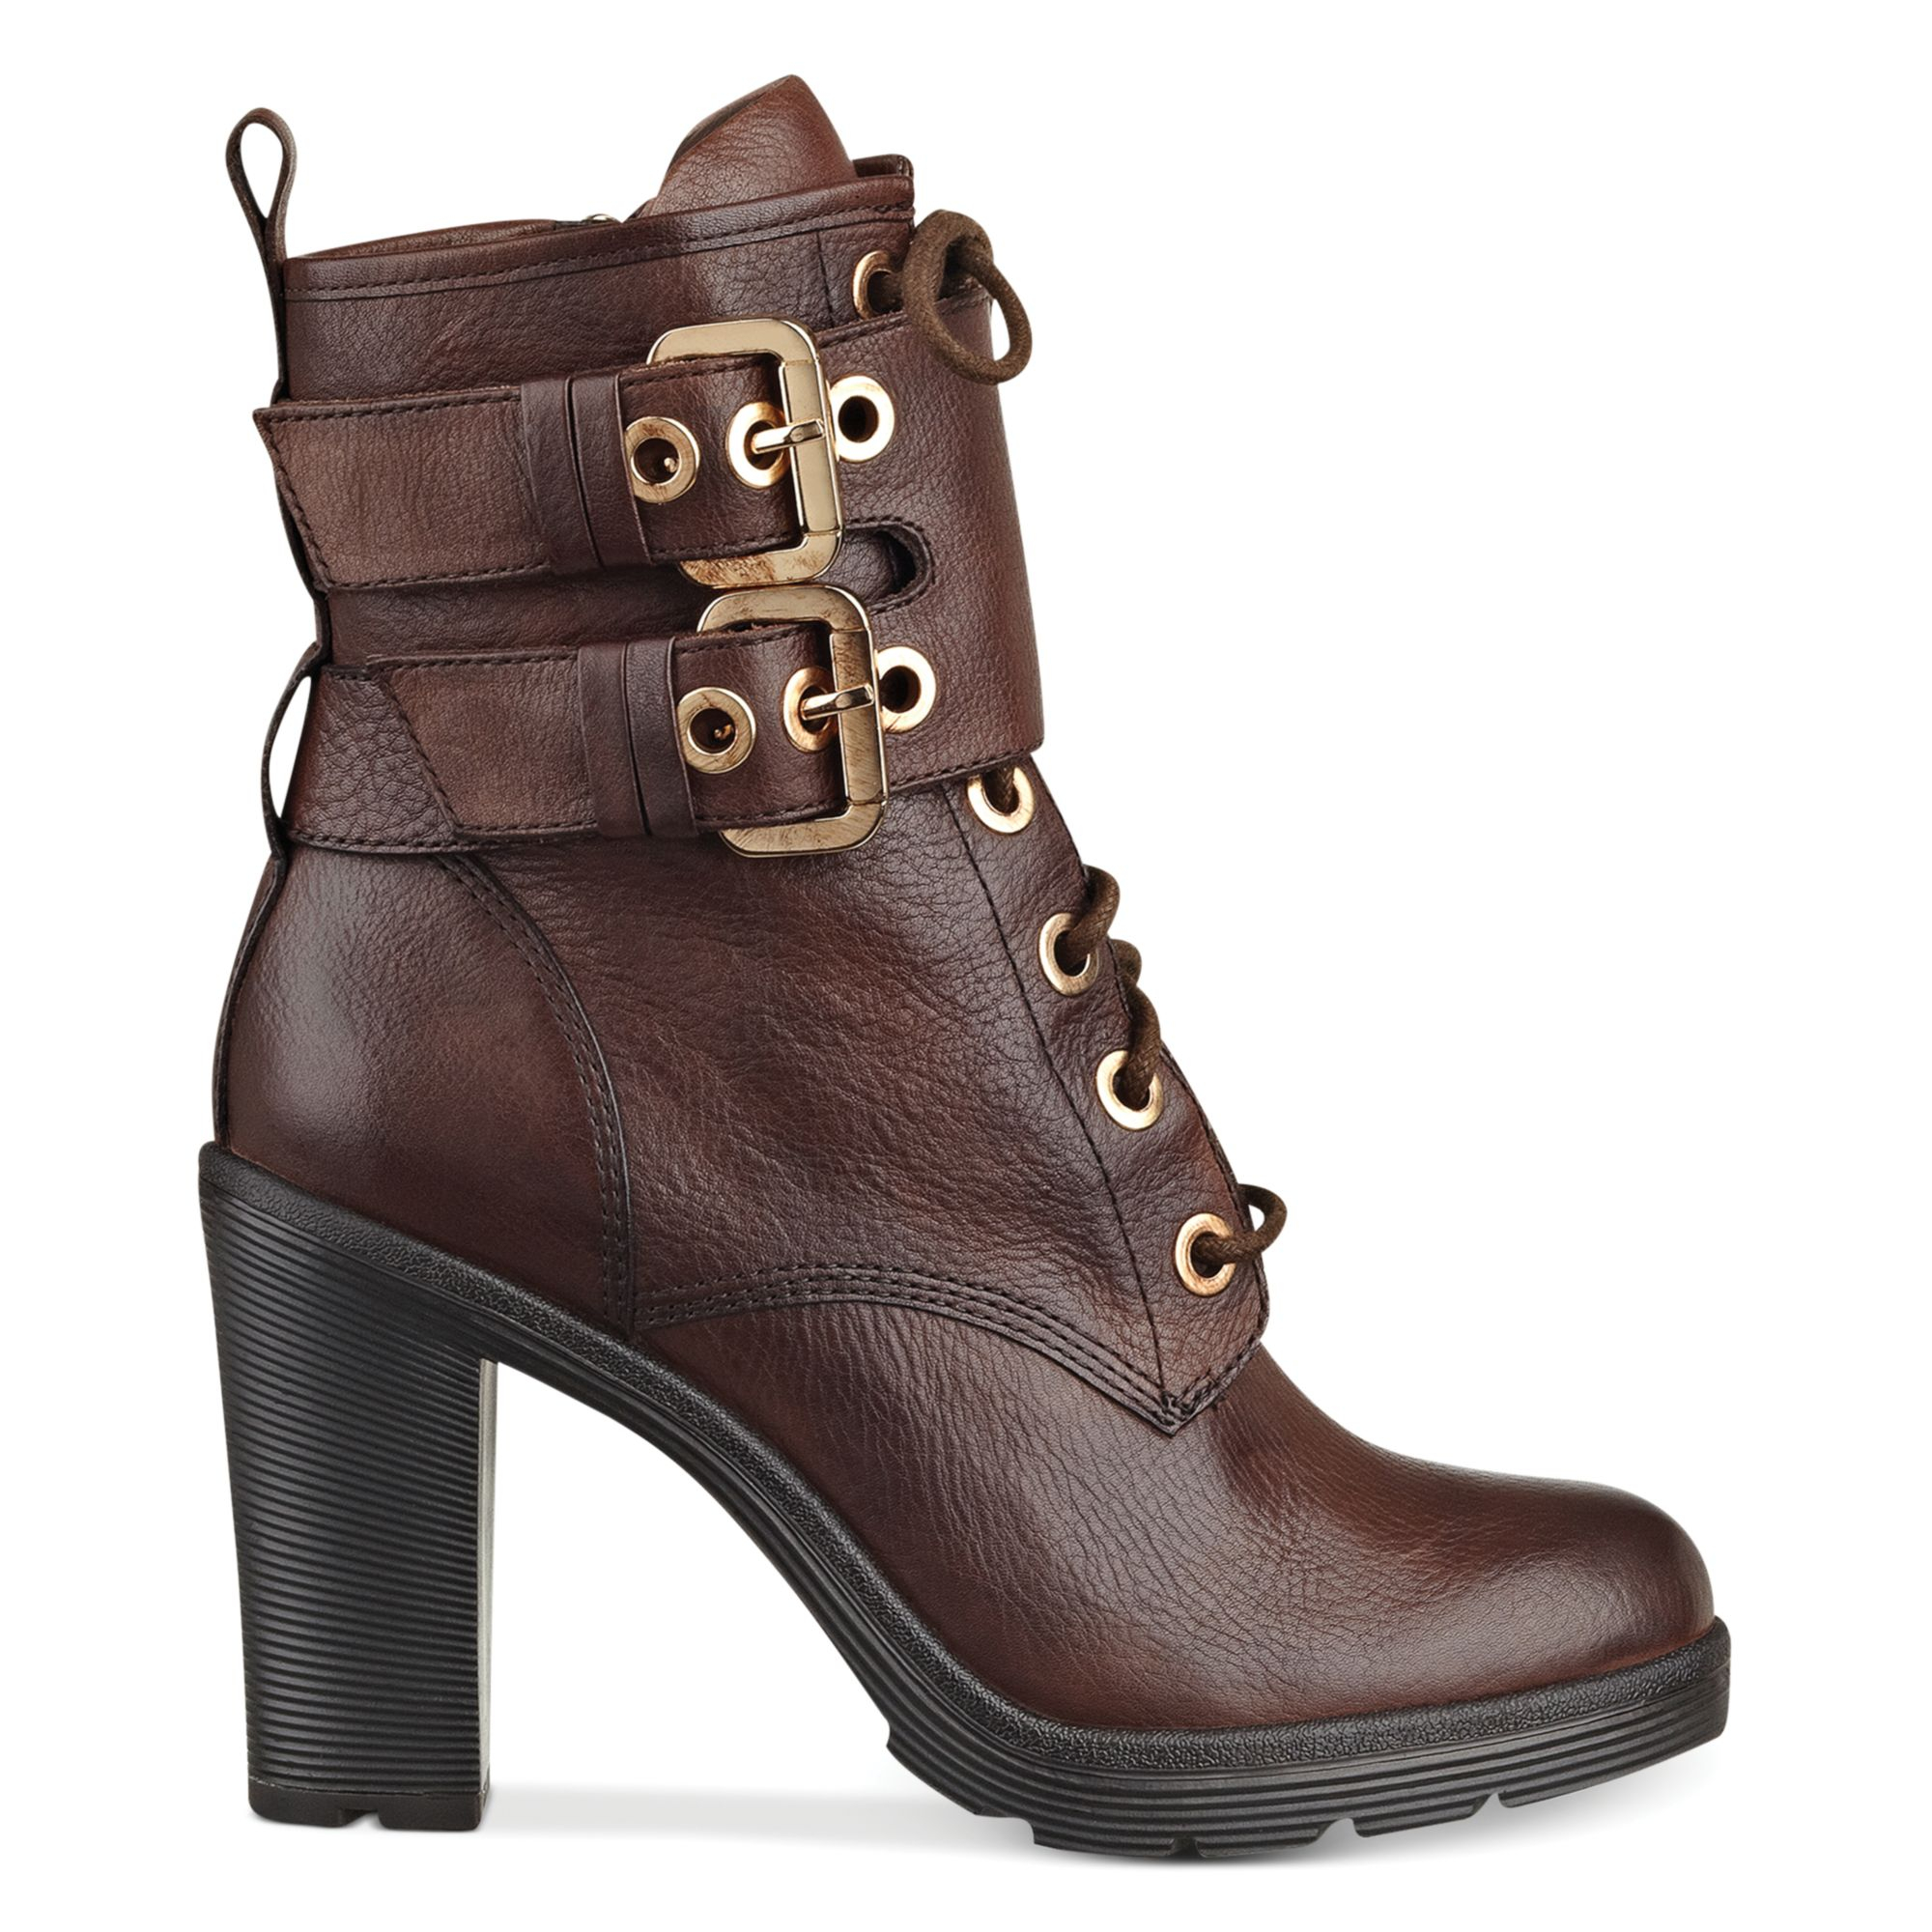 Lyst - Guess Womens Finlay High Heel Combat Booties In Brown-2740